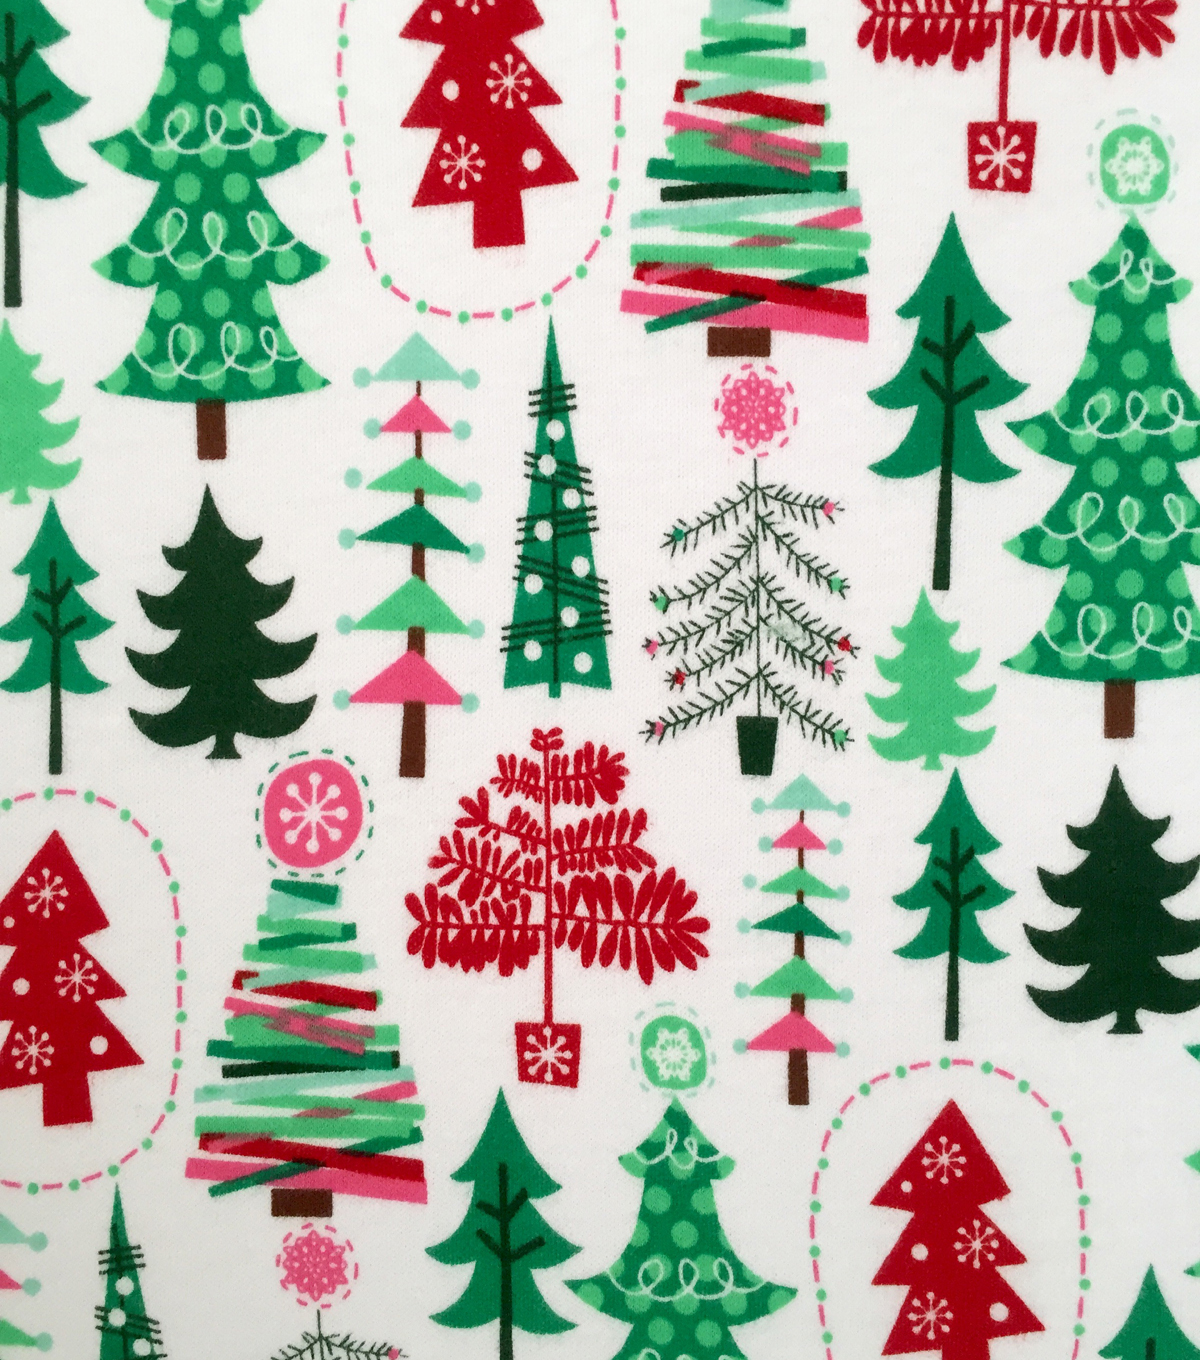 Christmas Coloring Fabric With Doodles Interlock Cotton Multi Colored Trees JOANN